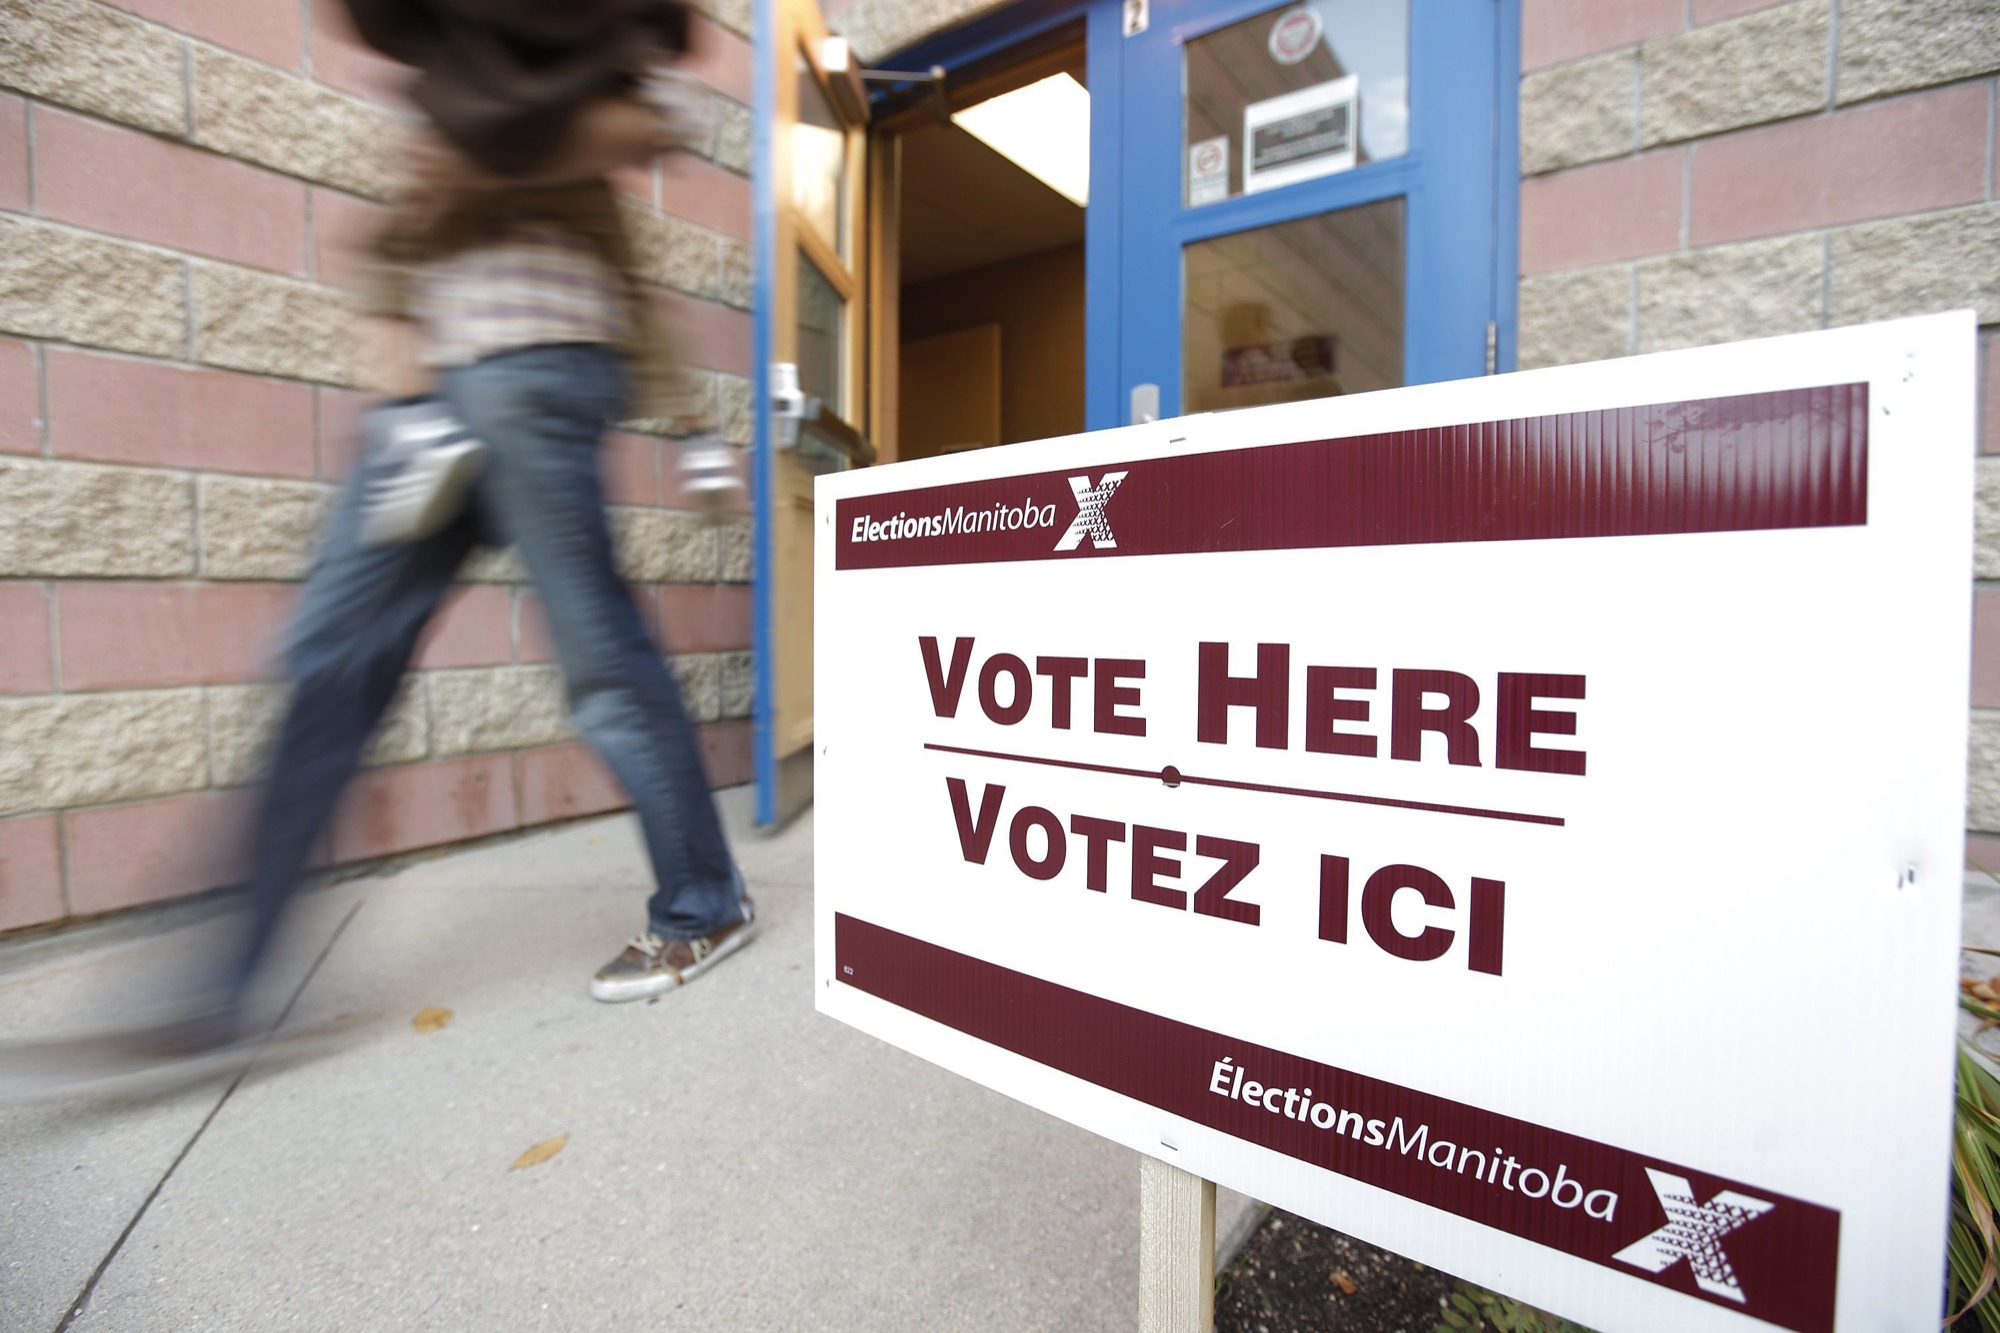 A voter walks out of a polling station in Winnipeg after voting in the October 2011 Manitoba election.